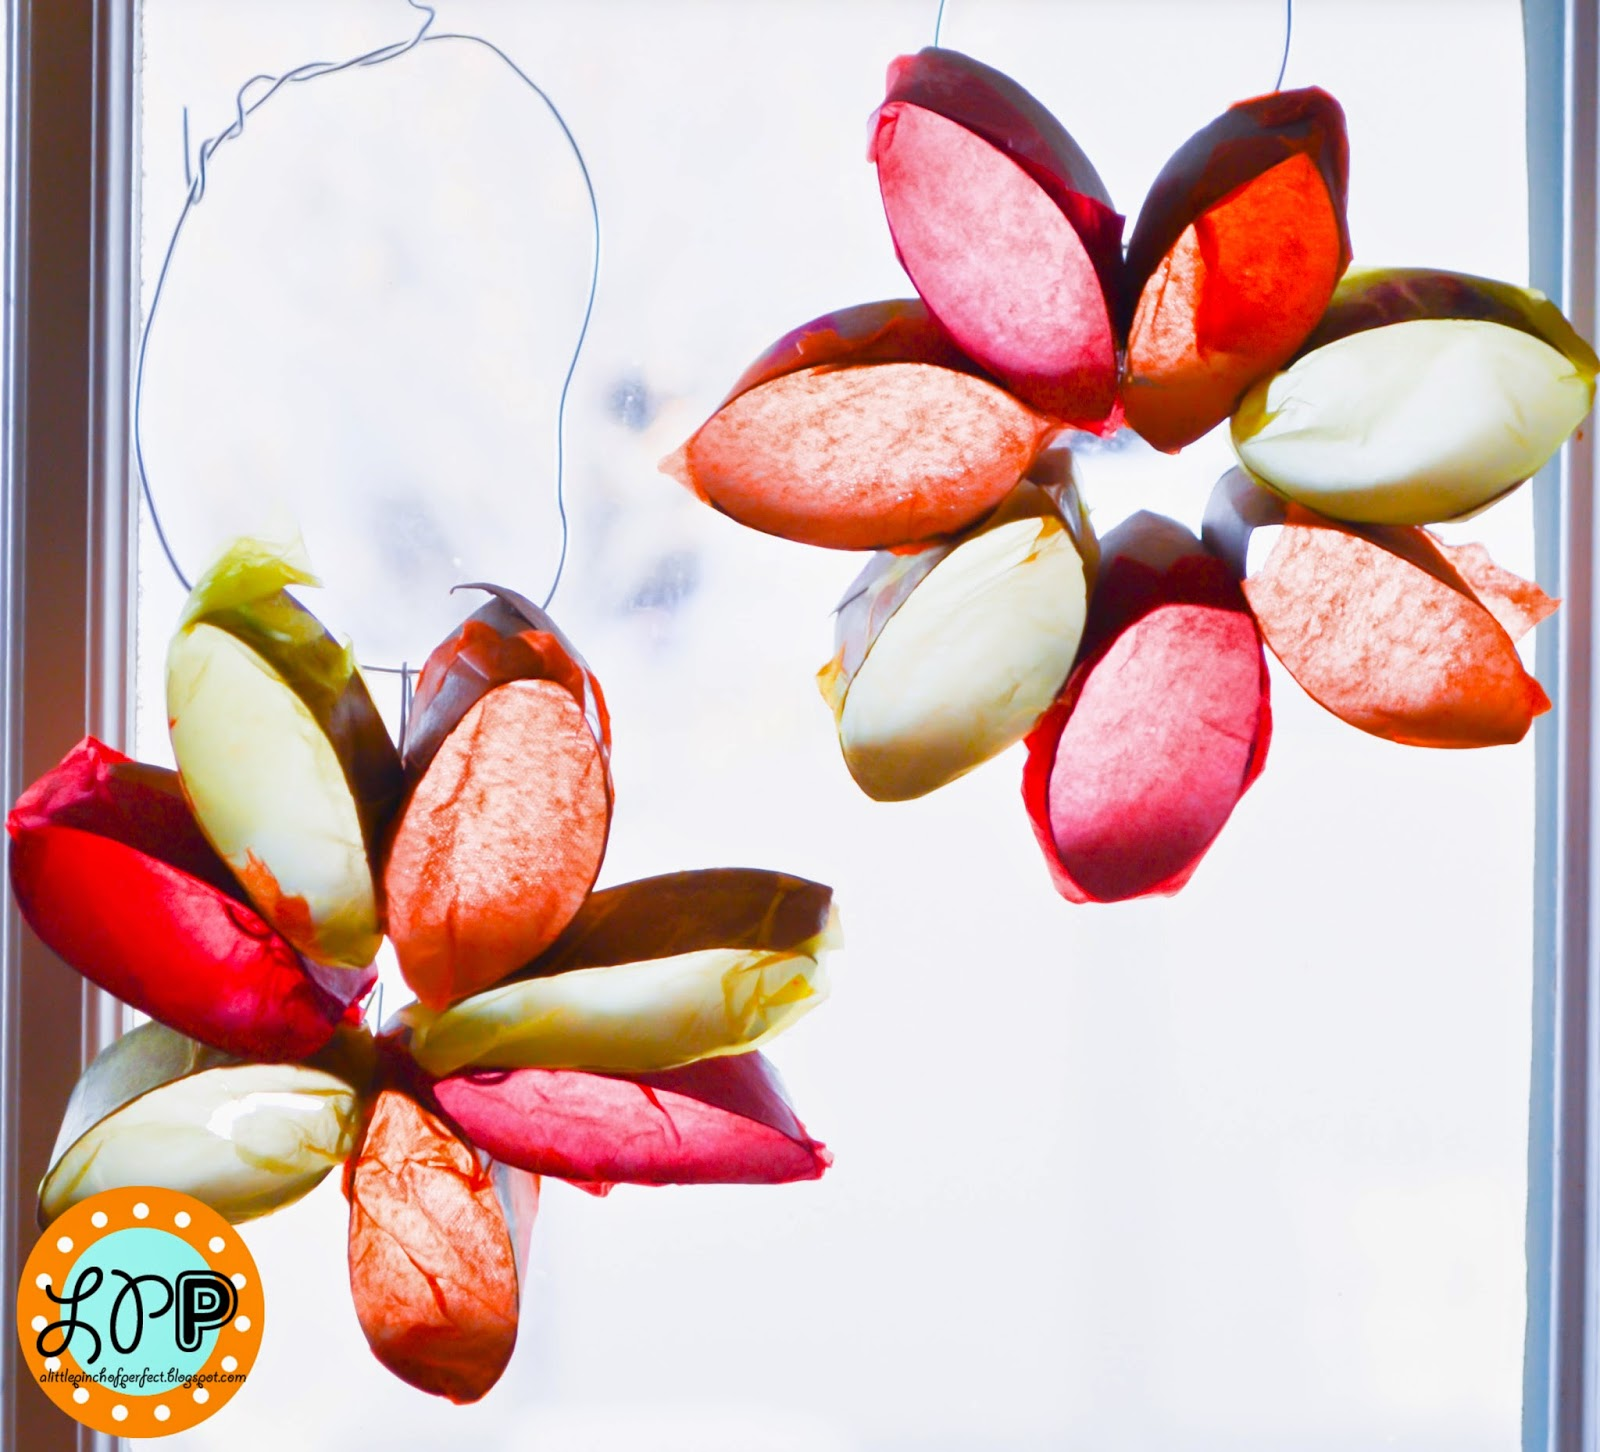 Sun catcher flowers with toilet paper rolls kid craft this week we are going to do some april shower crafts before we have to wait a whole year for the chance again stick around supplies empty toilet paper jeuxipadfo Choice Image